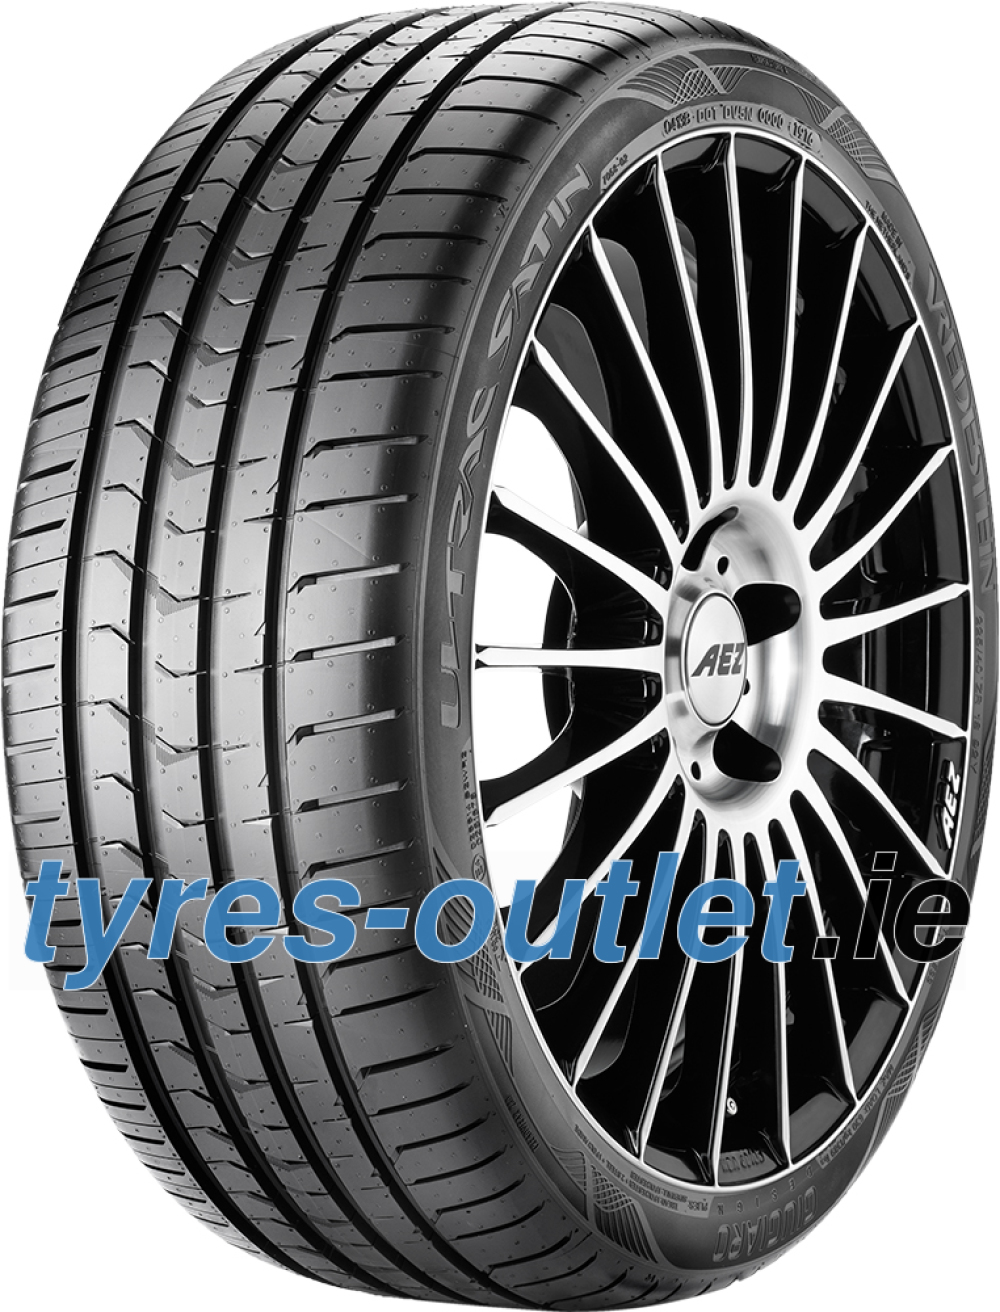 Vredestein Ultrac Satin ( 235/45 R18 98Y XL with rim protection ridge (FSL) )